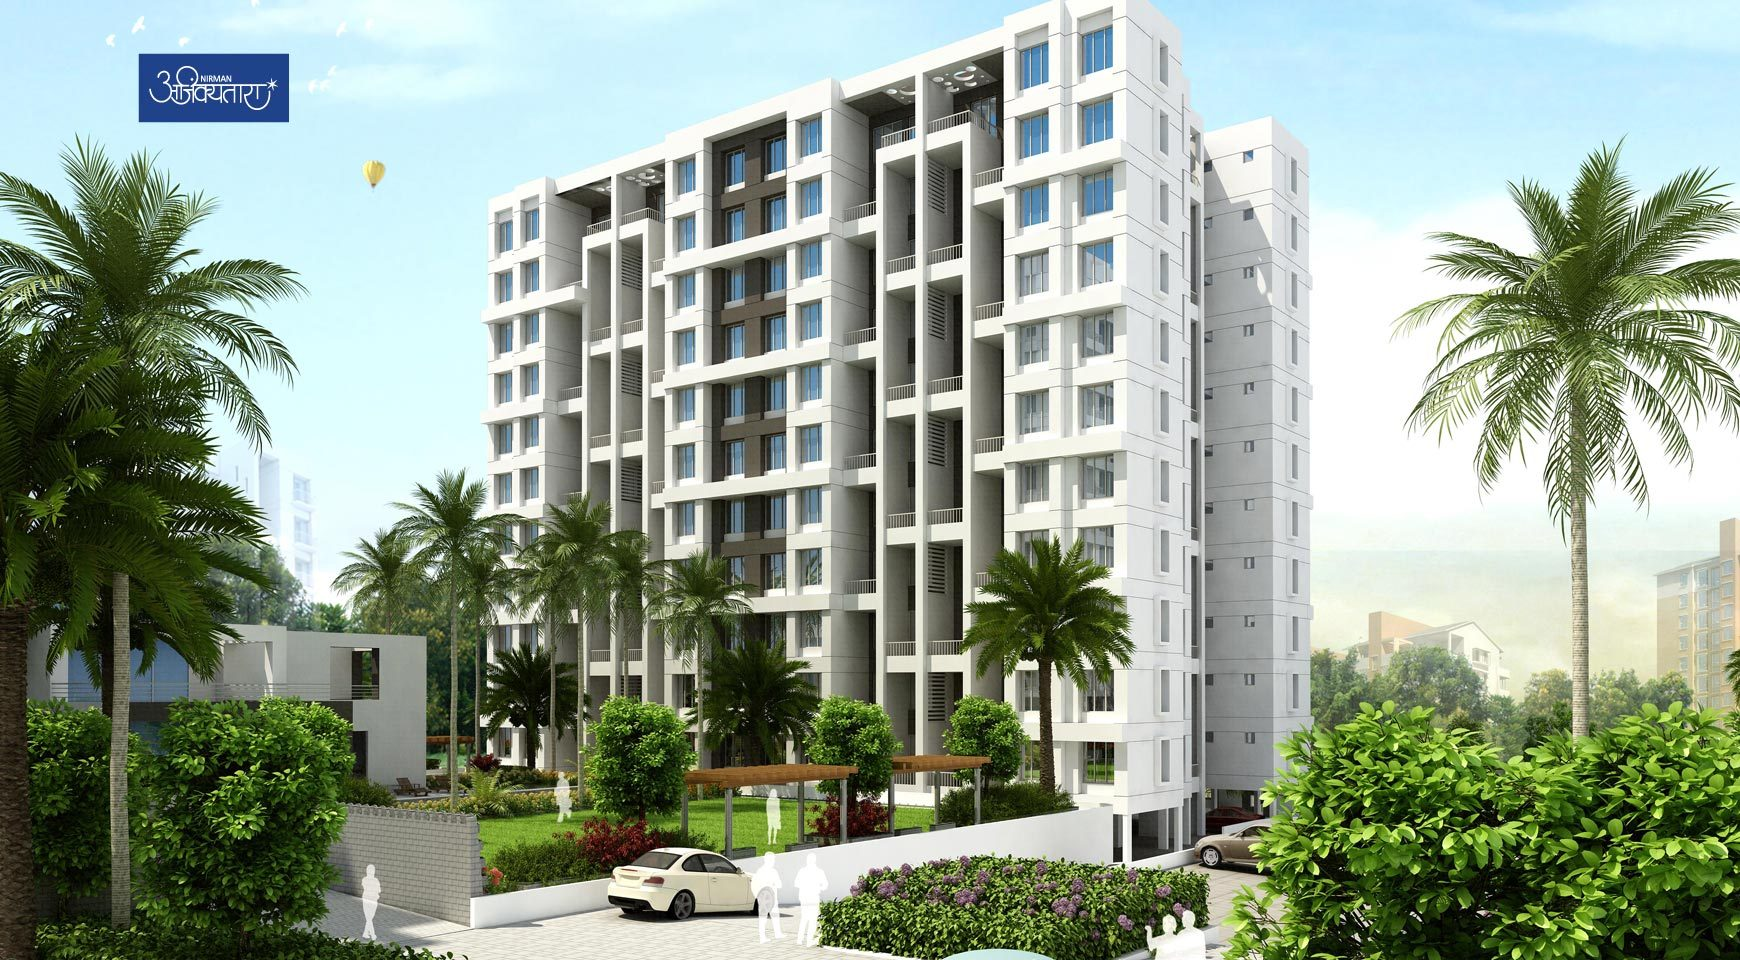 1 BHK, 2 BHK, 3 BHK Flats For Sale in Sinhagad Road Pune.